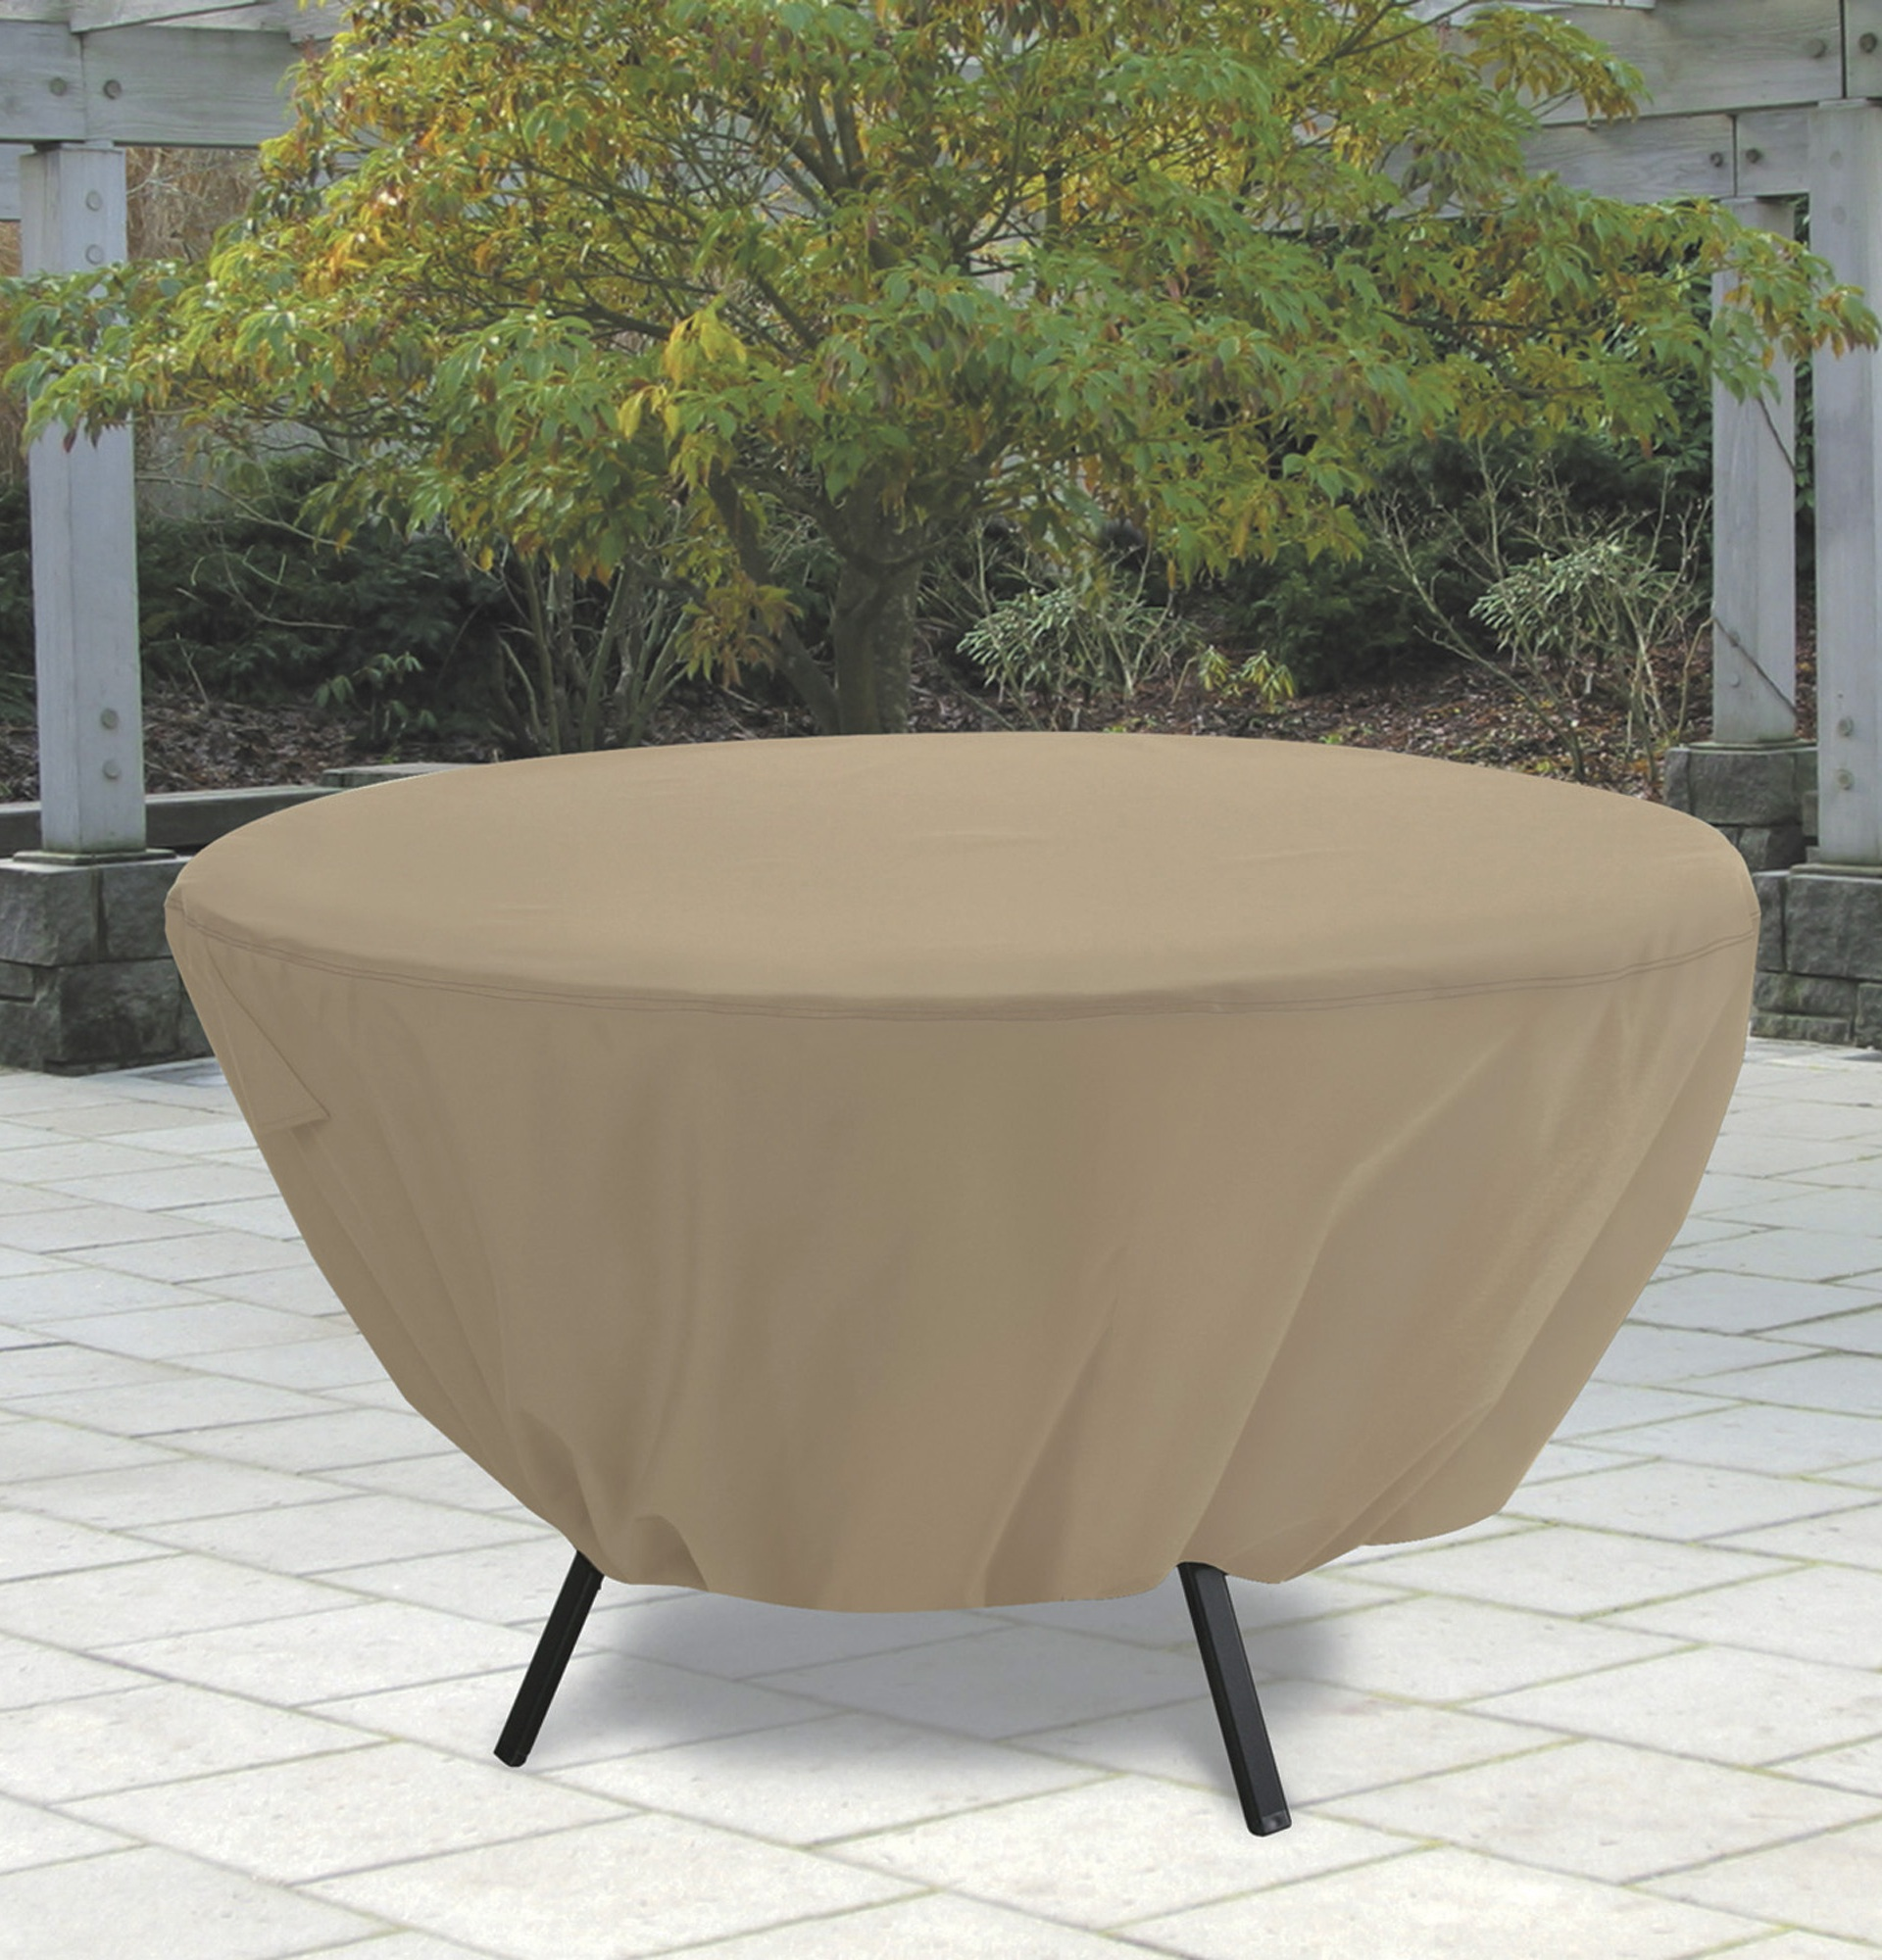 Round Patio Table Cover With Umbrella Hole